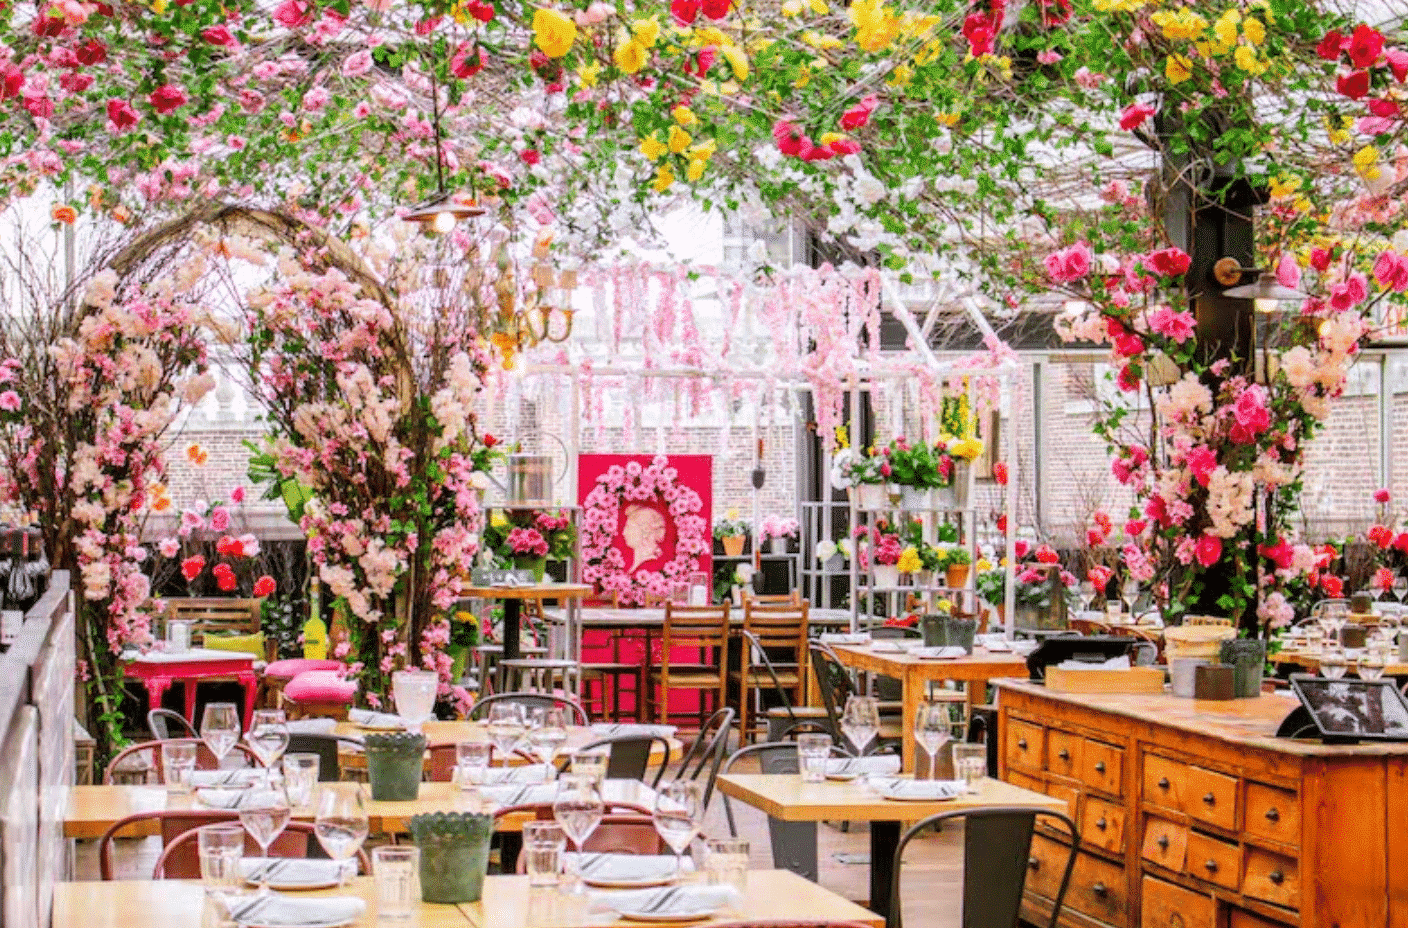 The 50 Most Instagrammable Cafes In America – Big 7 Travel